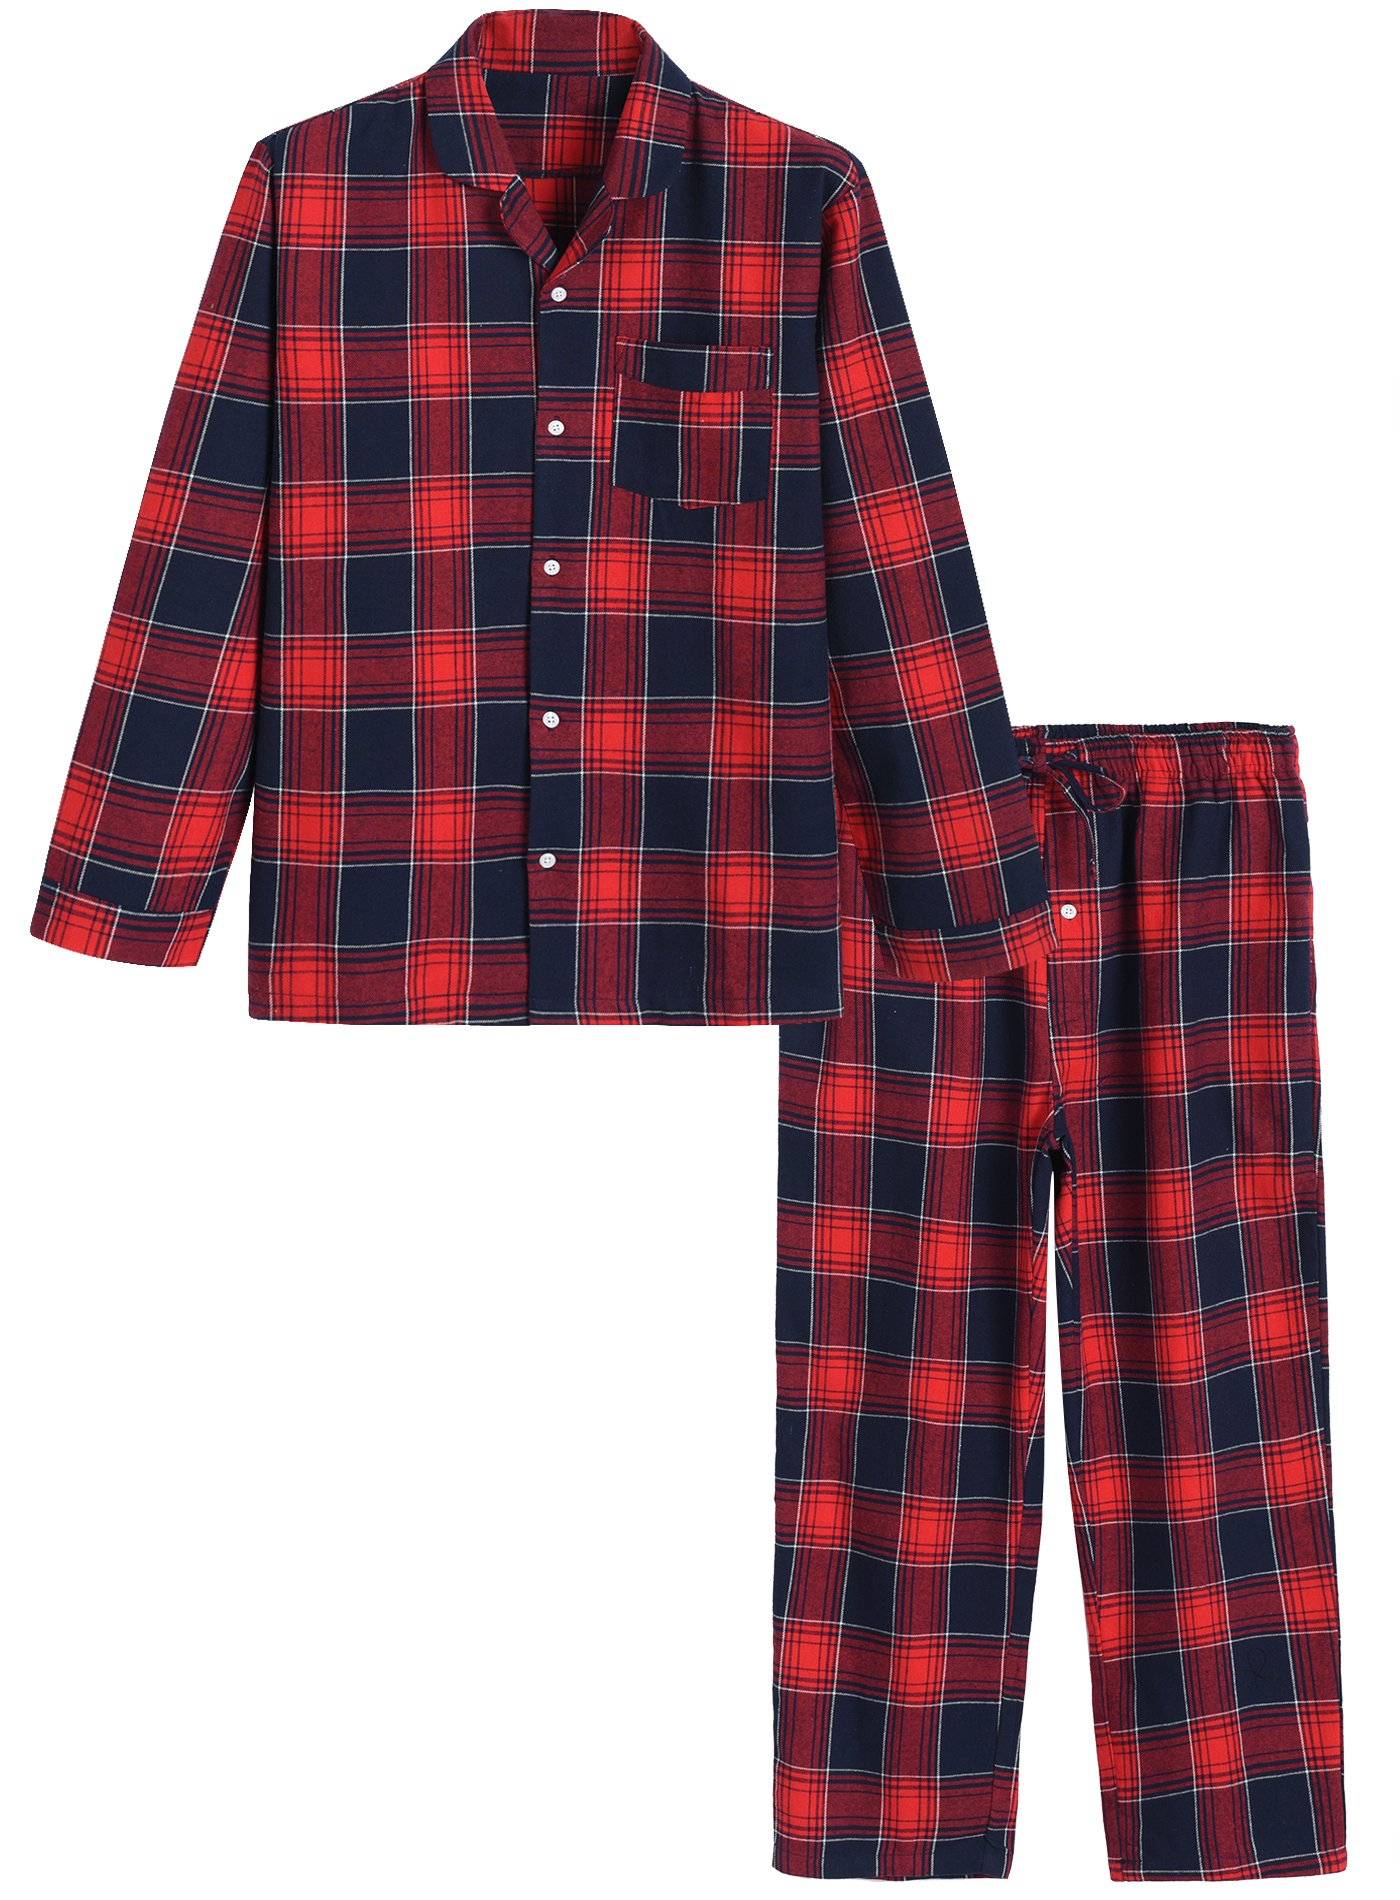 Image of Classic Red Plaid Christmas Pajamas - See More Colors